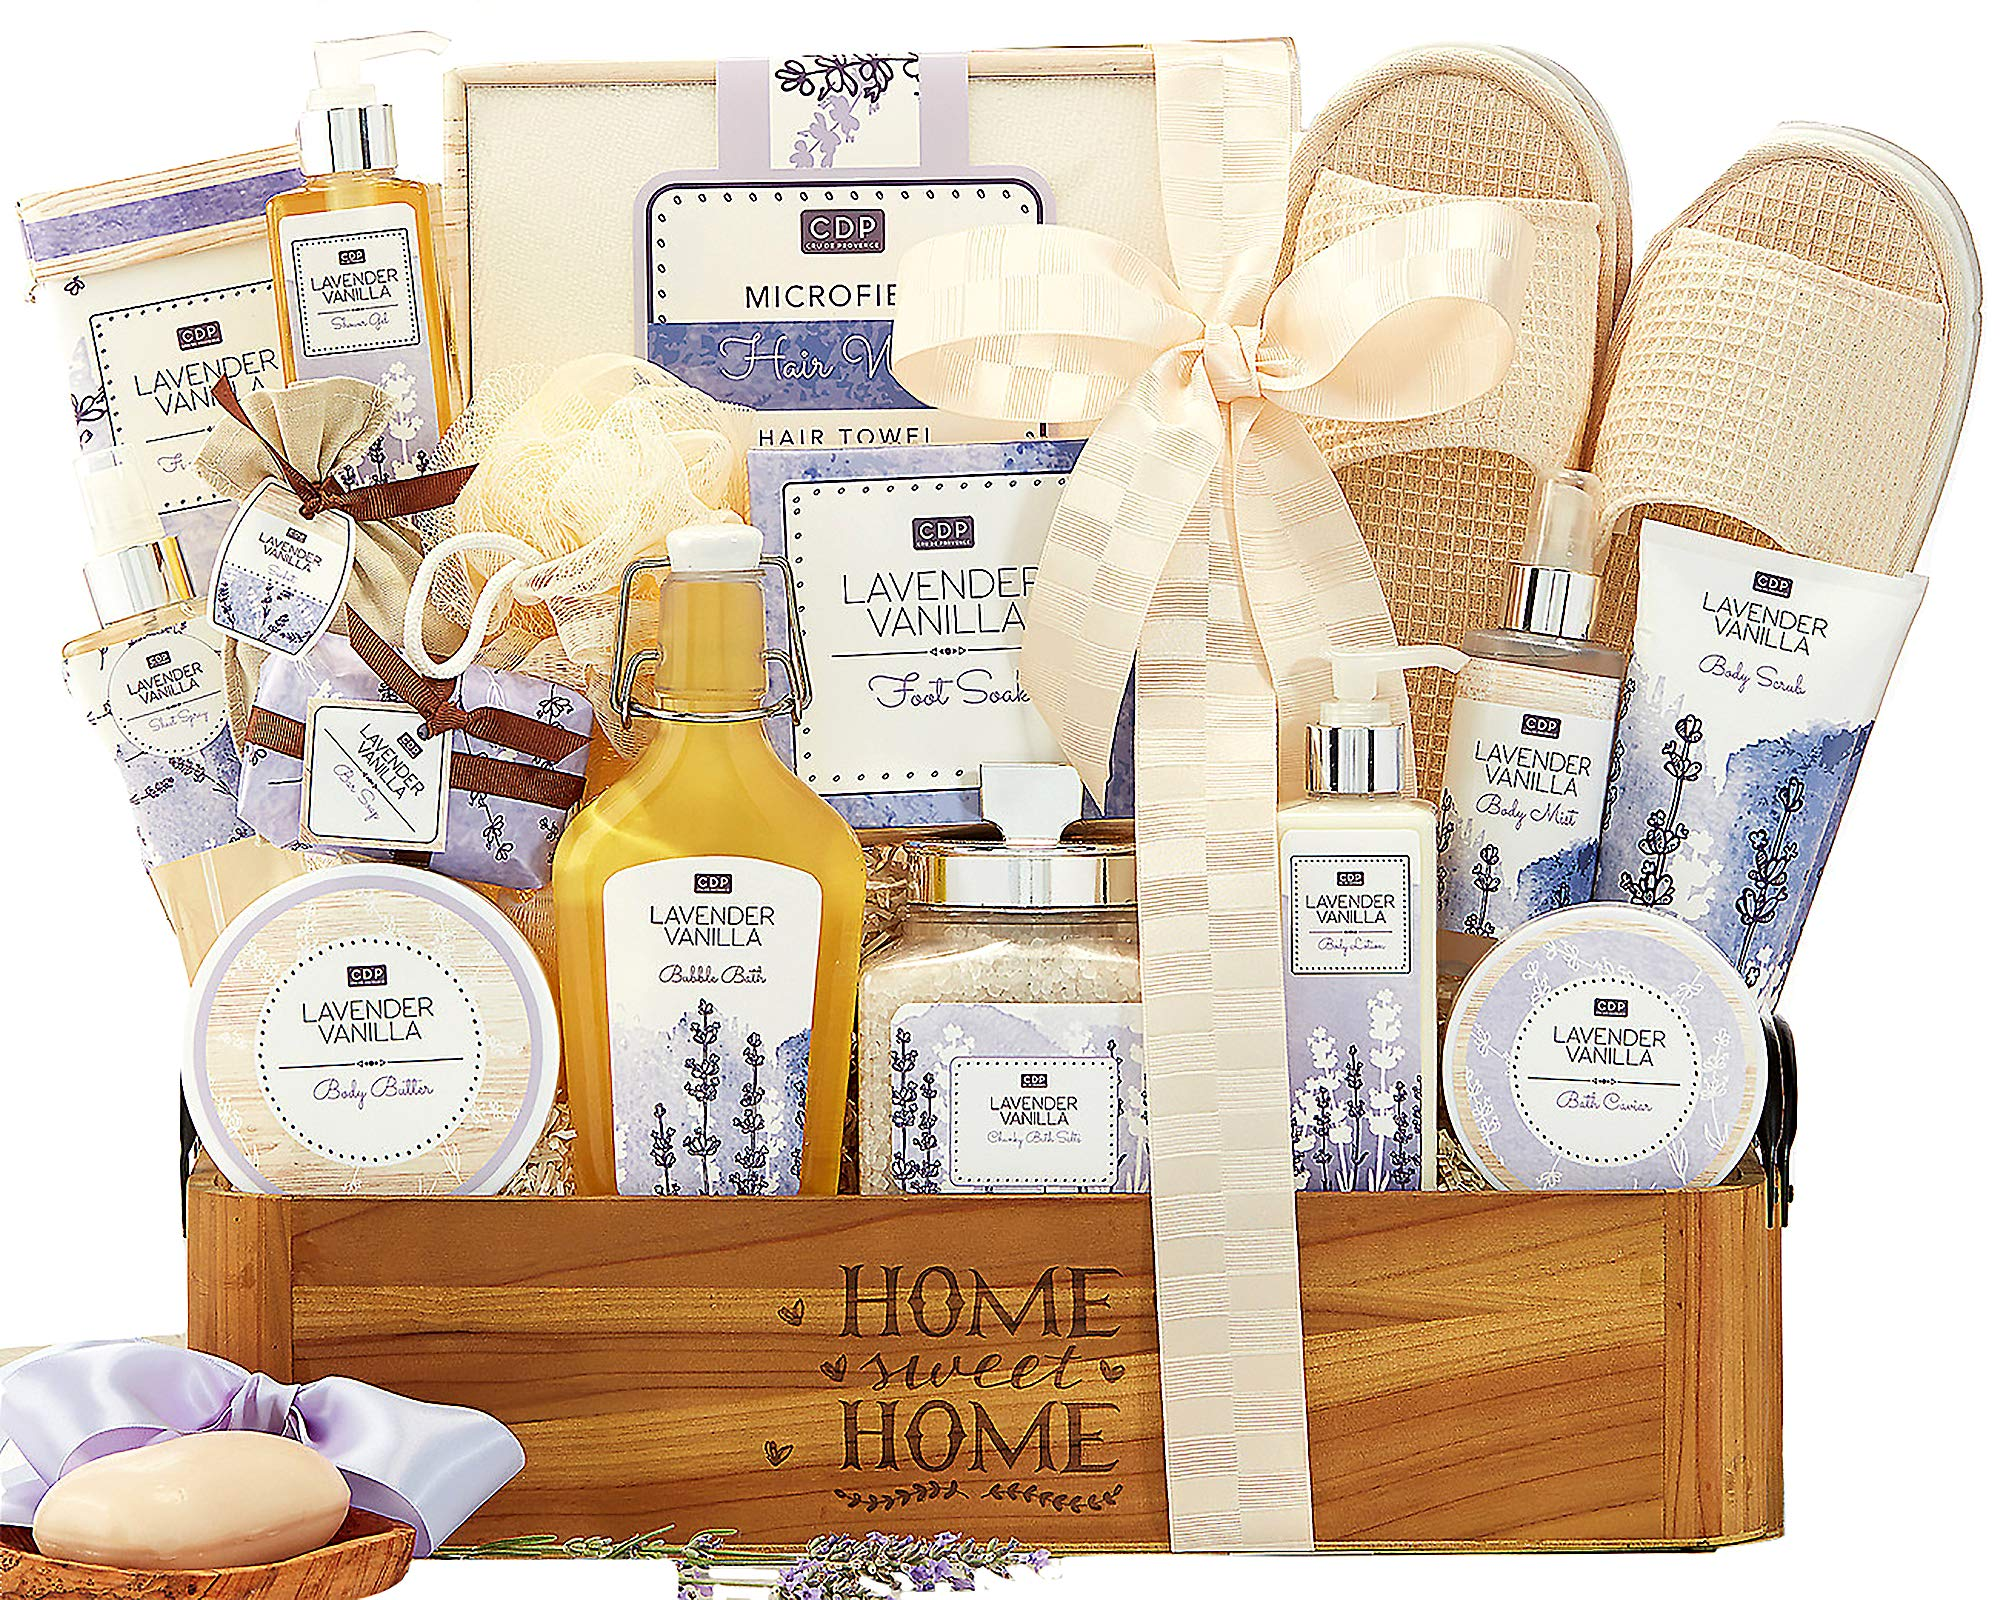 Lavender Vanilla Spa Experience Gift Basket Spa Gift Contains Bath Salts, Bath Caviar, Body Lotion, Body Scrub, Body Butter, Shower Gel, Bar Soap, Body Scrub and More ! by Wine Country Gift Baskets (Image #1)